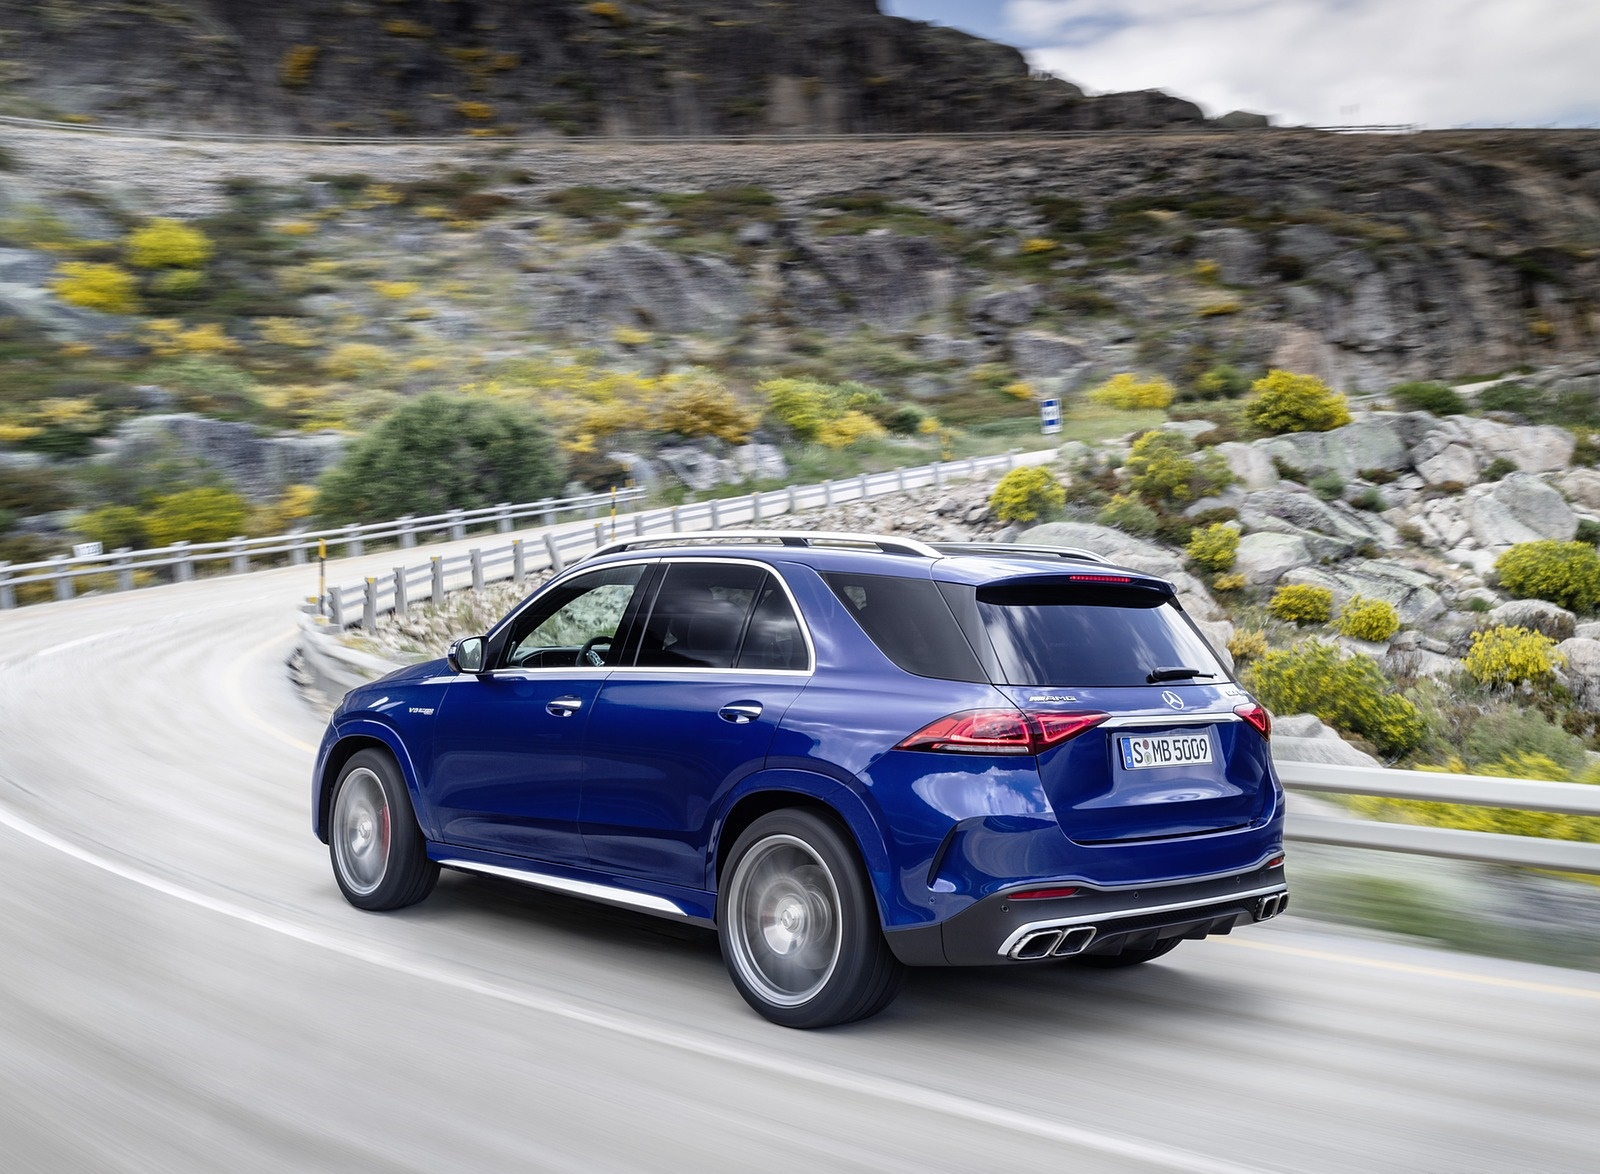 2021 Mercedes-AMG GLE 63 S 4MATIC Rear Three-Quarter Wallpapers (8)